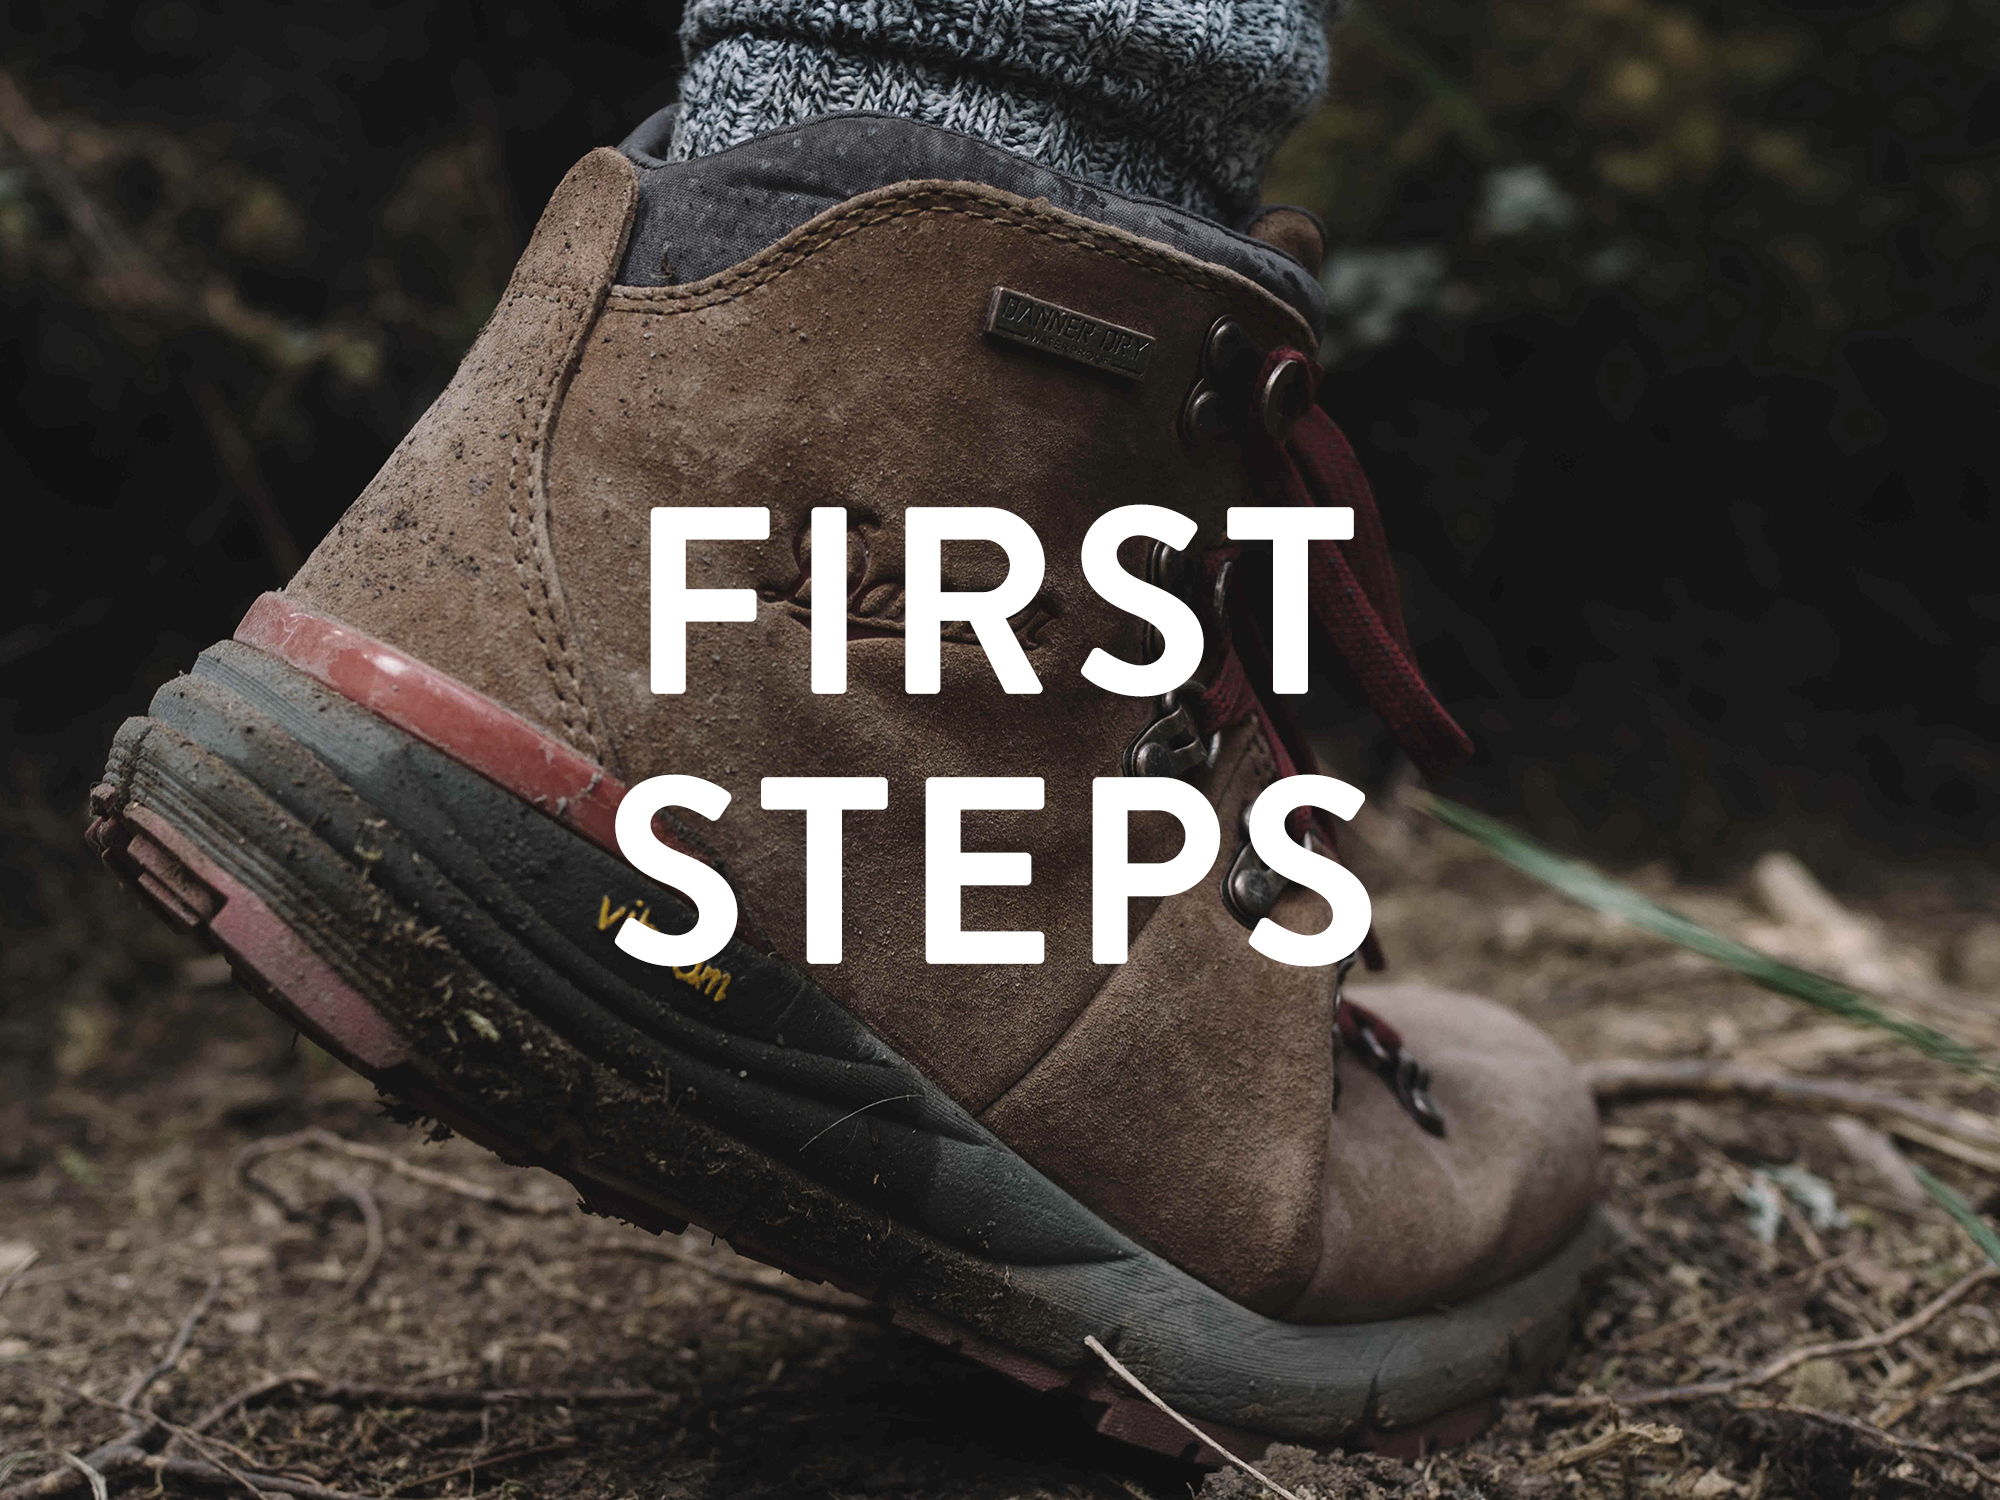 First Steps - First Steps Class is a 4-week class that welcomes anyone who wants to know more of what it means to put your Faith in Christ; these are the beginning steps in walking with Him. Classes will start over on a monthly basis but anyone can jump in at anytime!Day: Sundays, beginning September 15Time: 9:30-11aLocation: Stone Ridge Elementary Library, Room 13